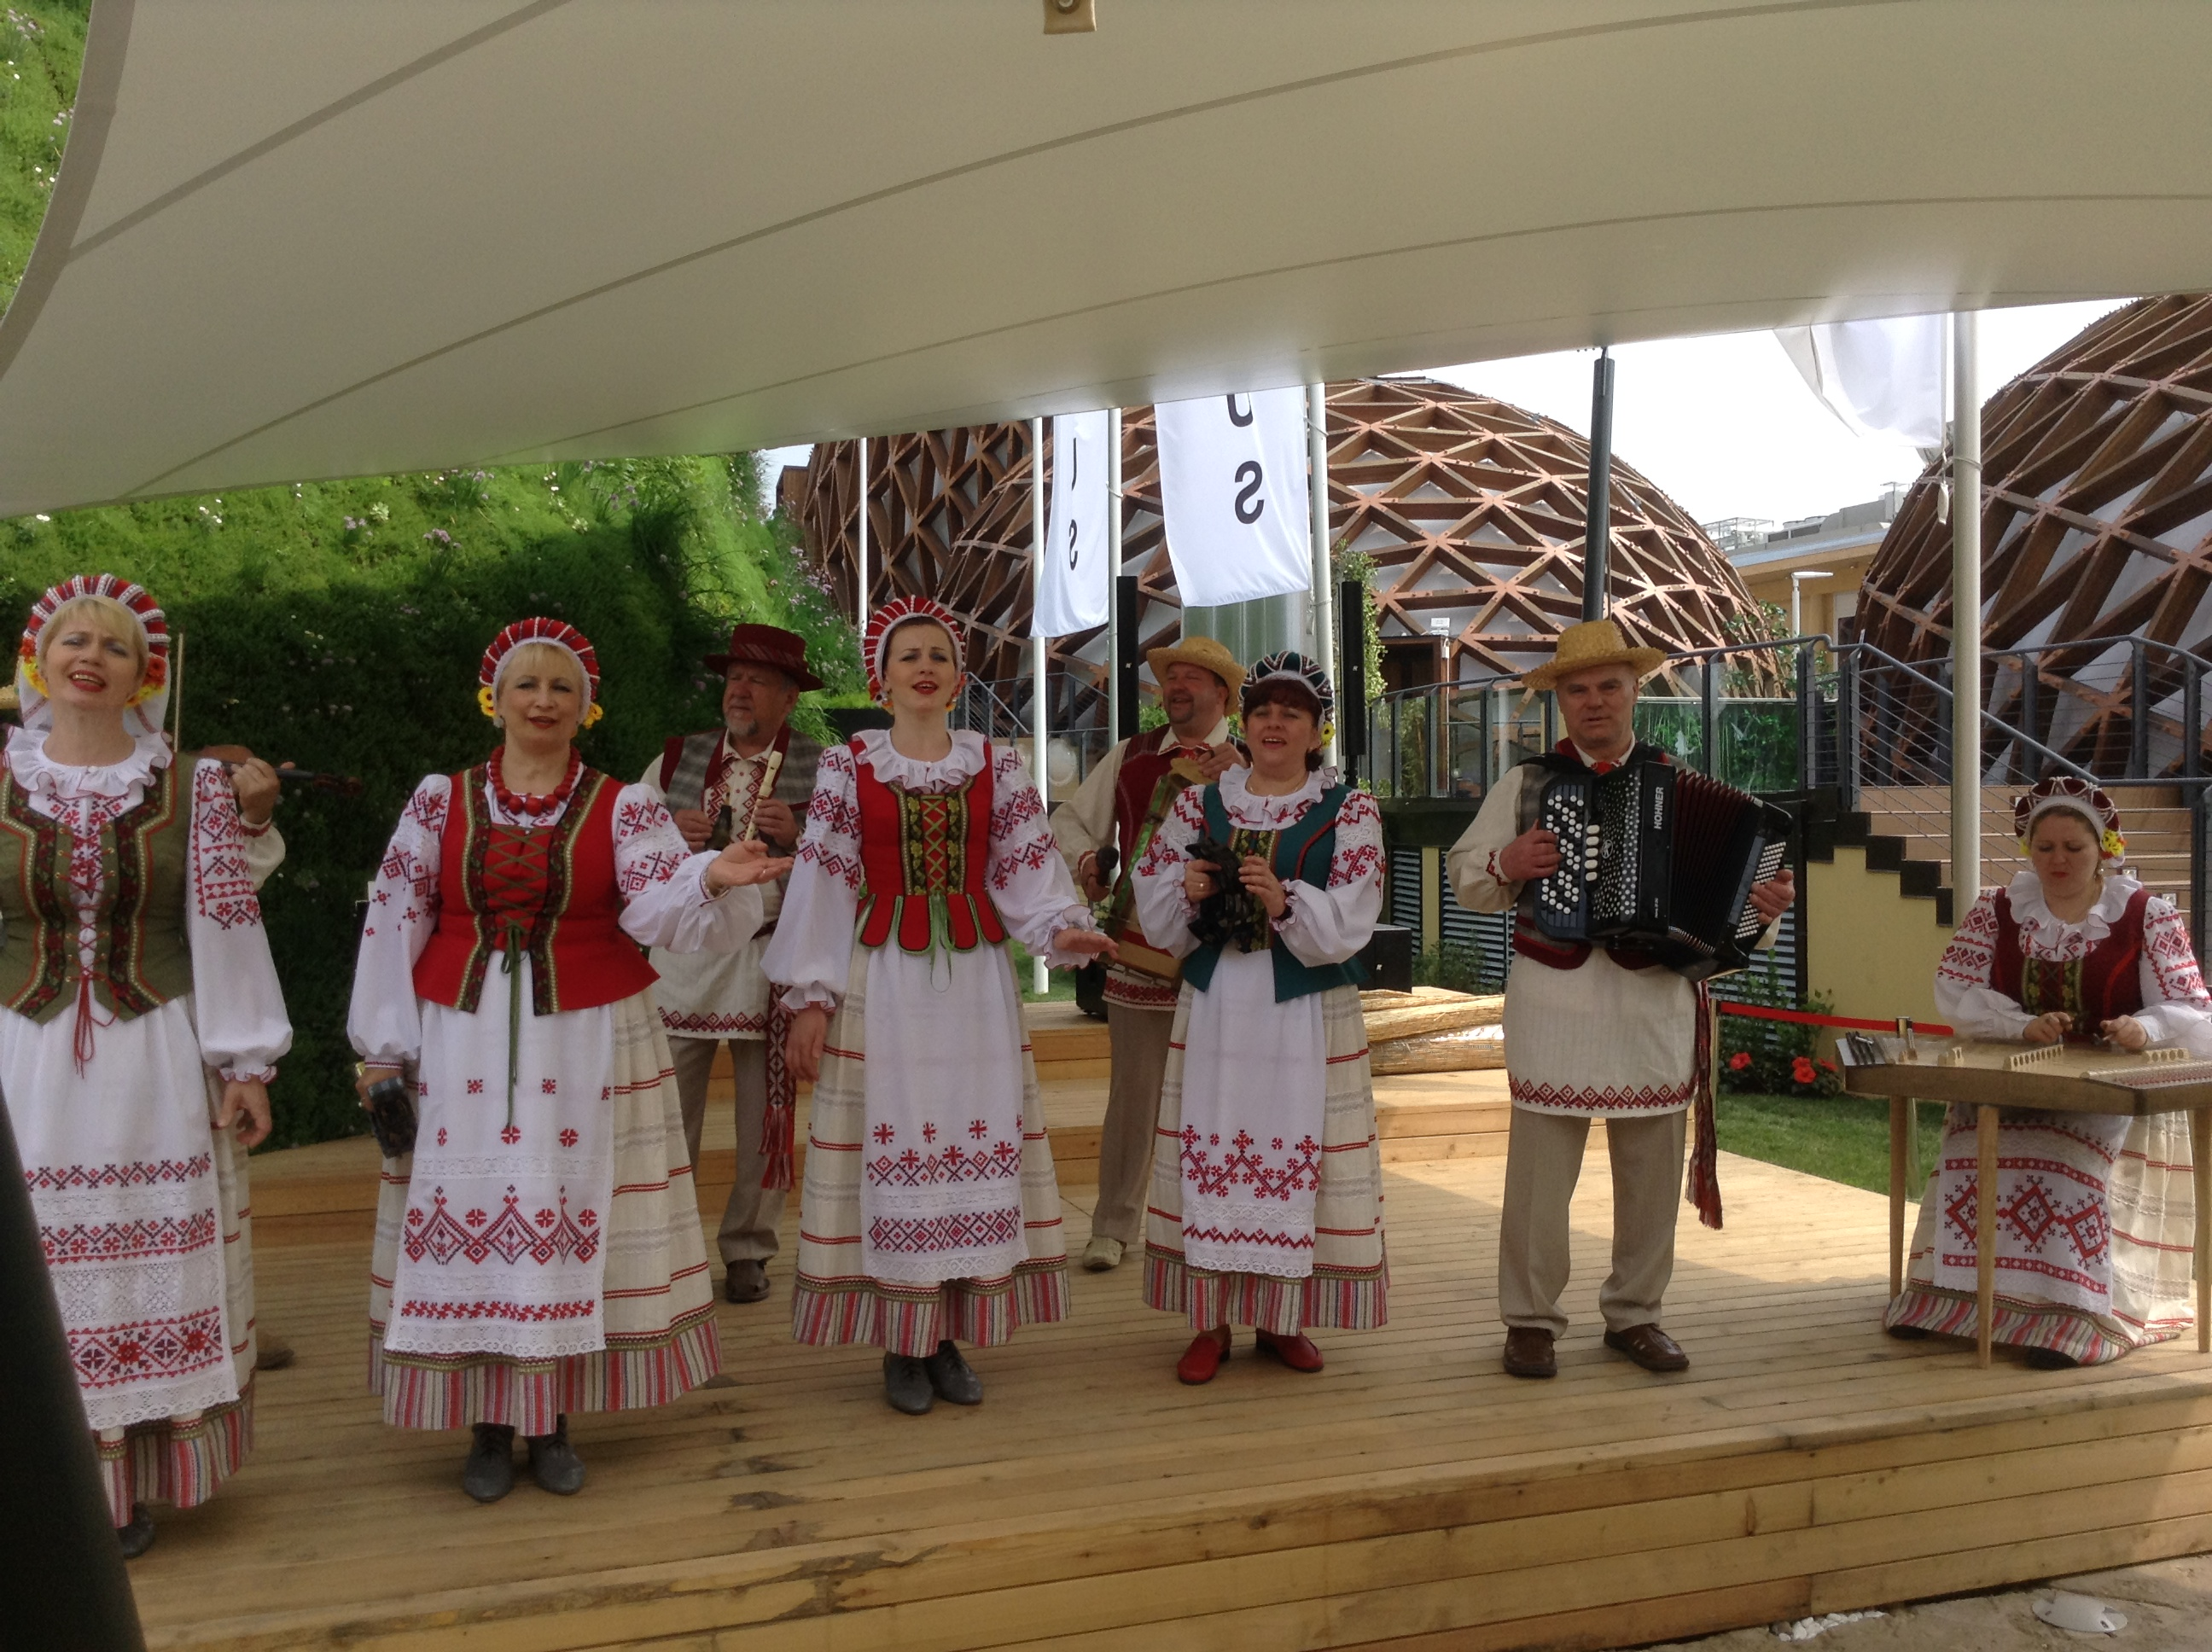 Belarus traditional music and dance, Milano Expo 2015, MilanKaRaja